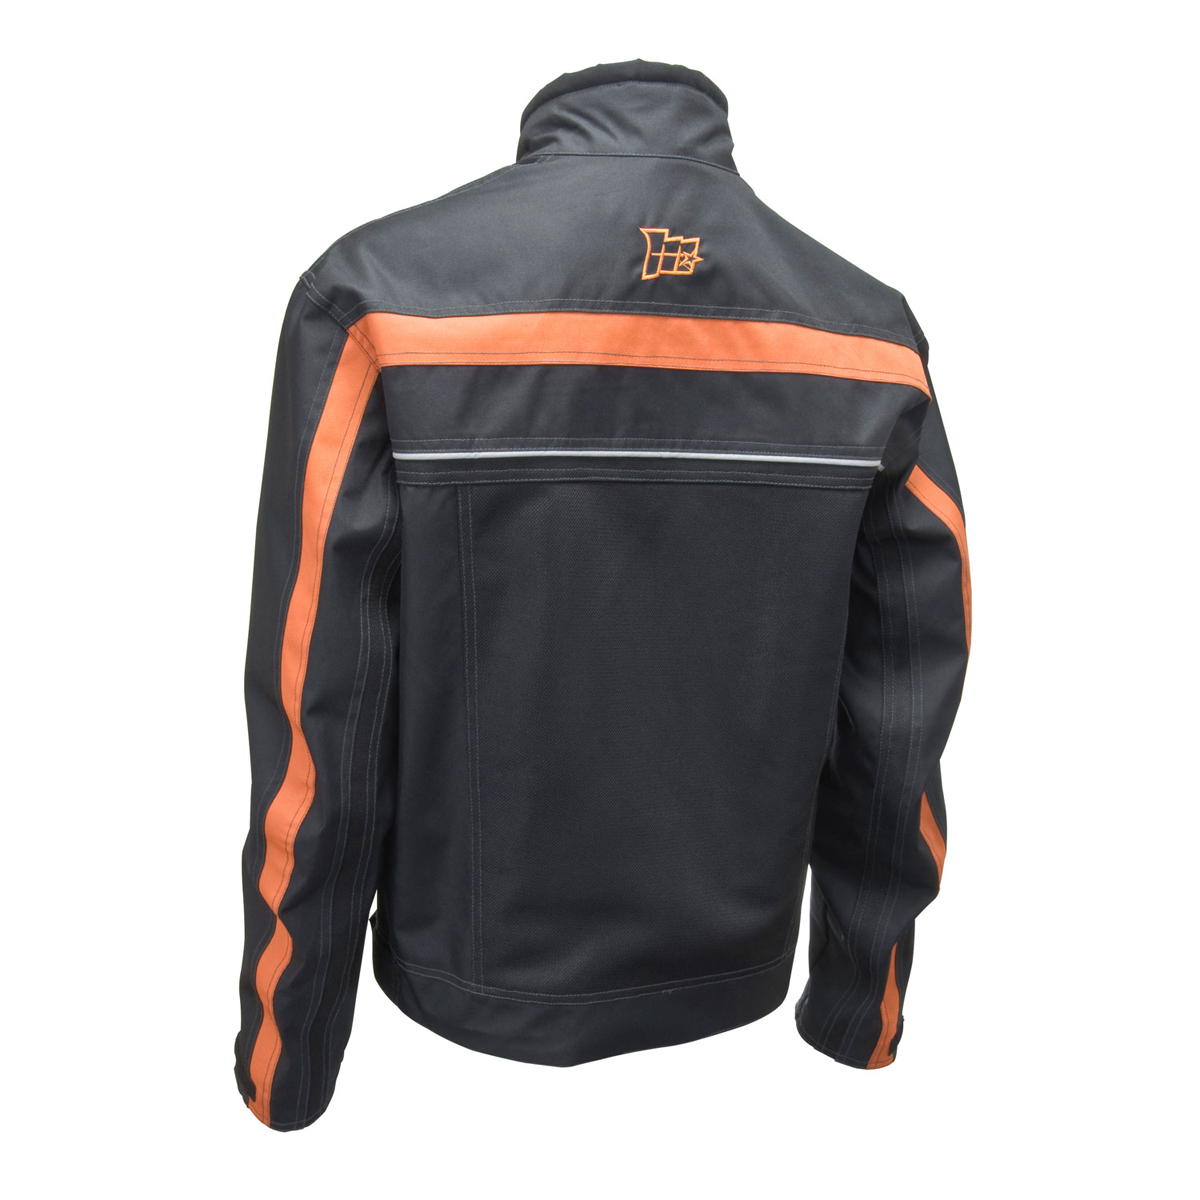 Leather jacket for motorcycle riding - Men 039 S Mossi Jaunt Jacket Motorcycle Riding